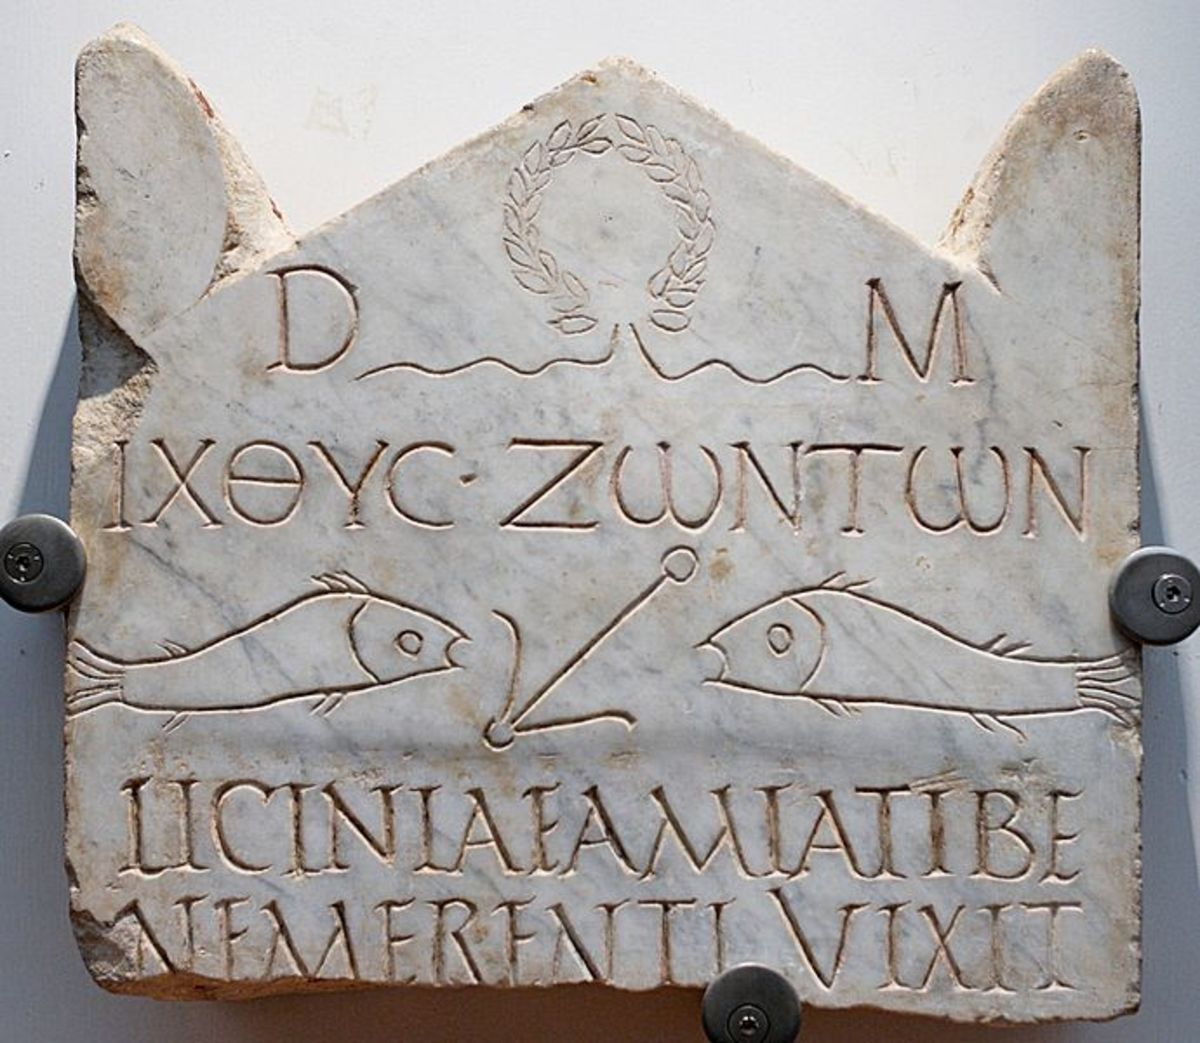 The Funerary Stele of Licinia Amias